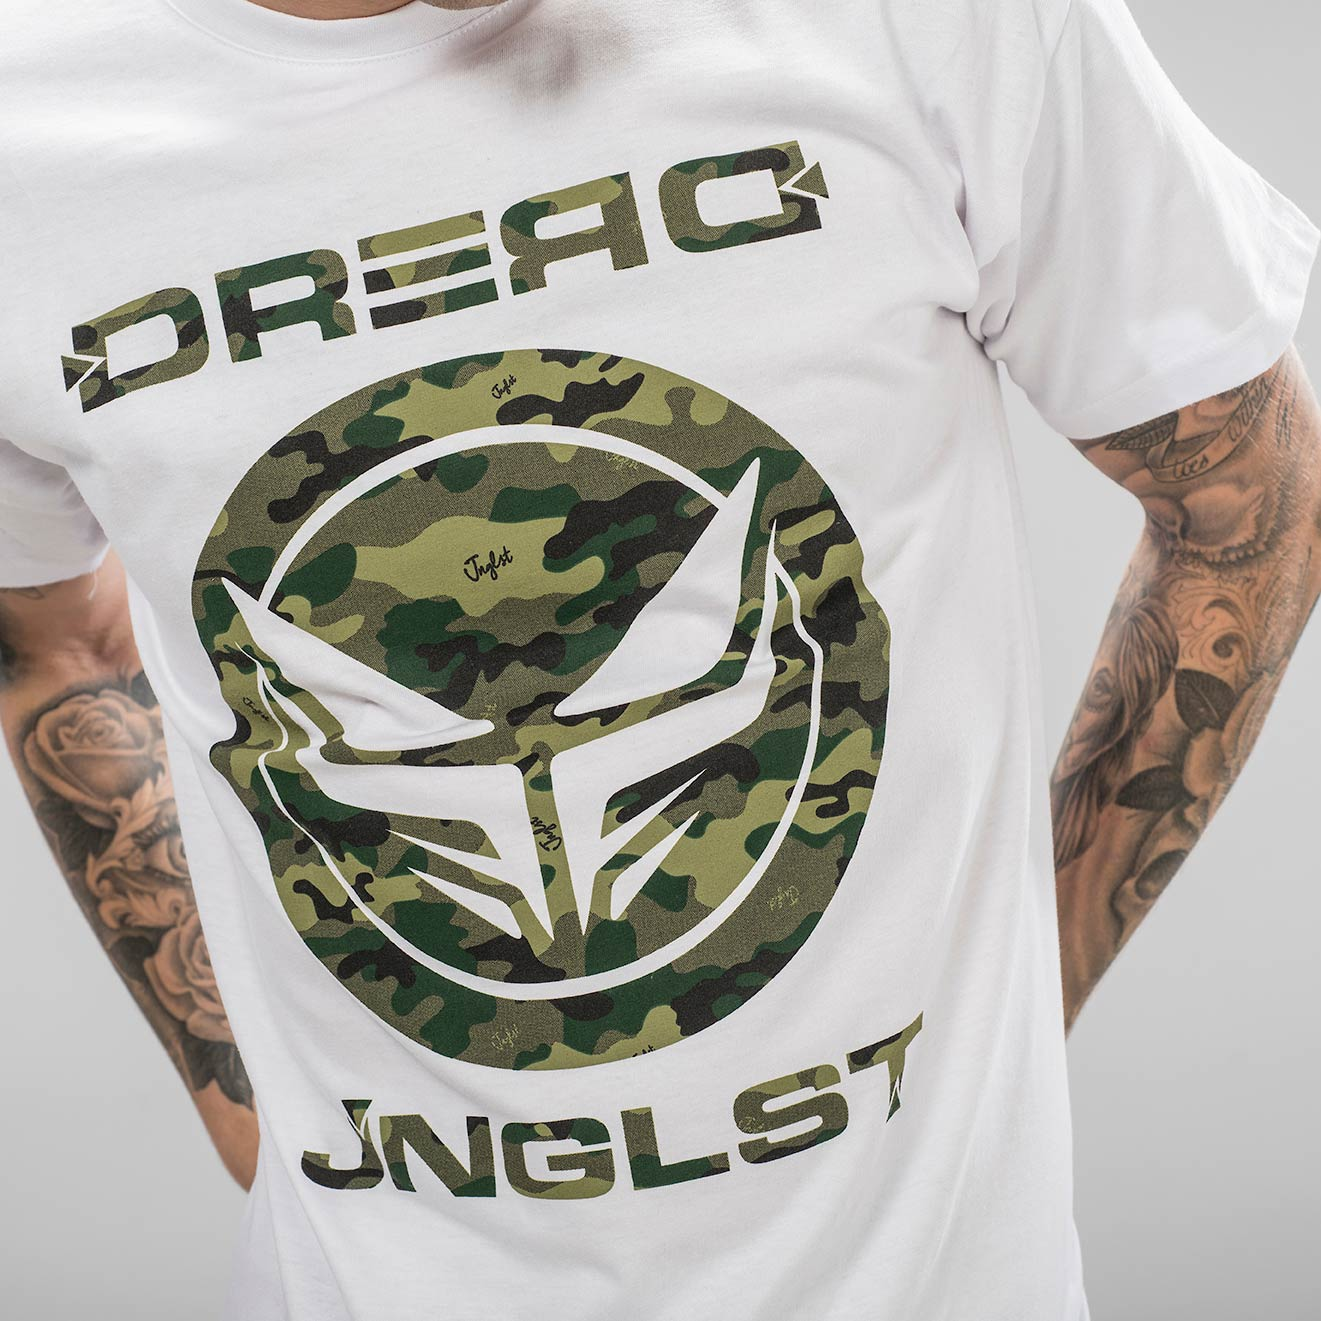 Dread Junglist Collab White T-Shirt from the Front